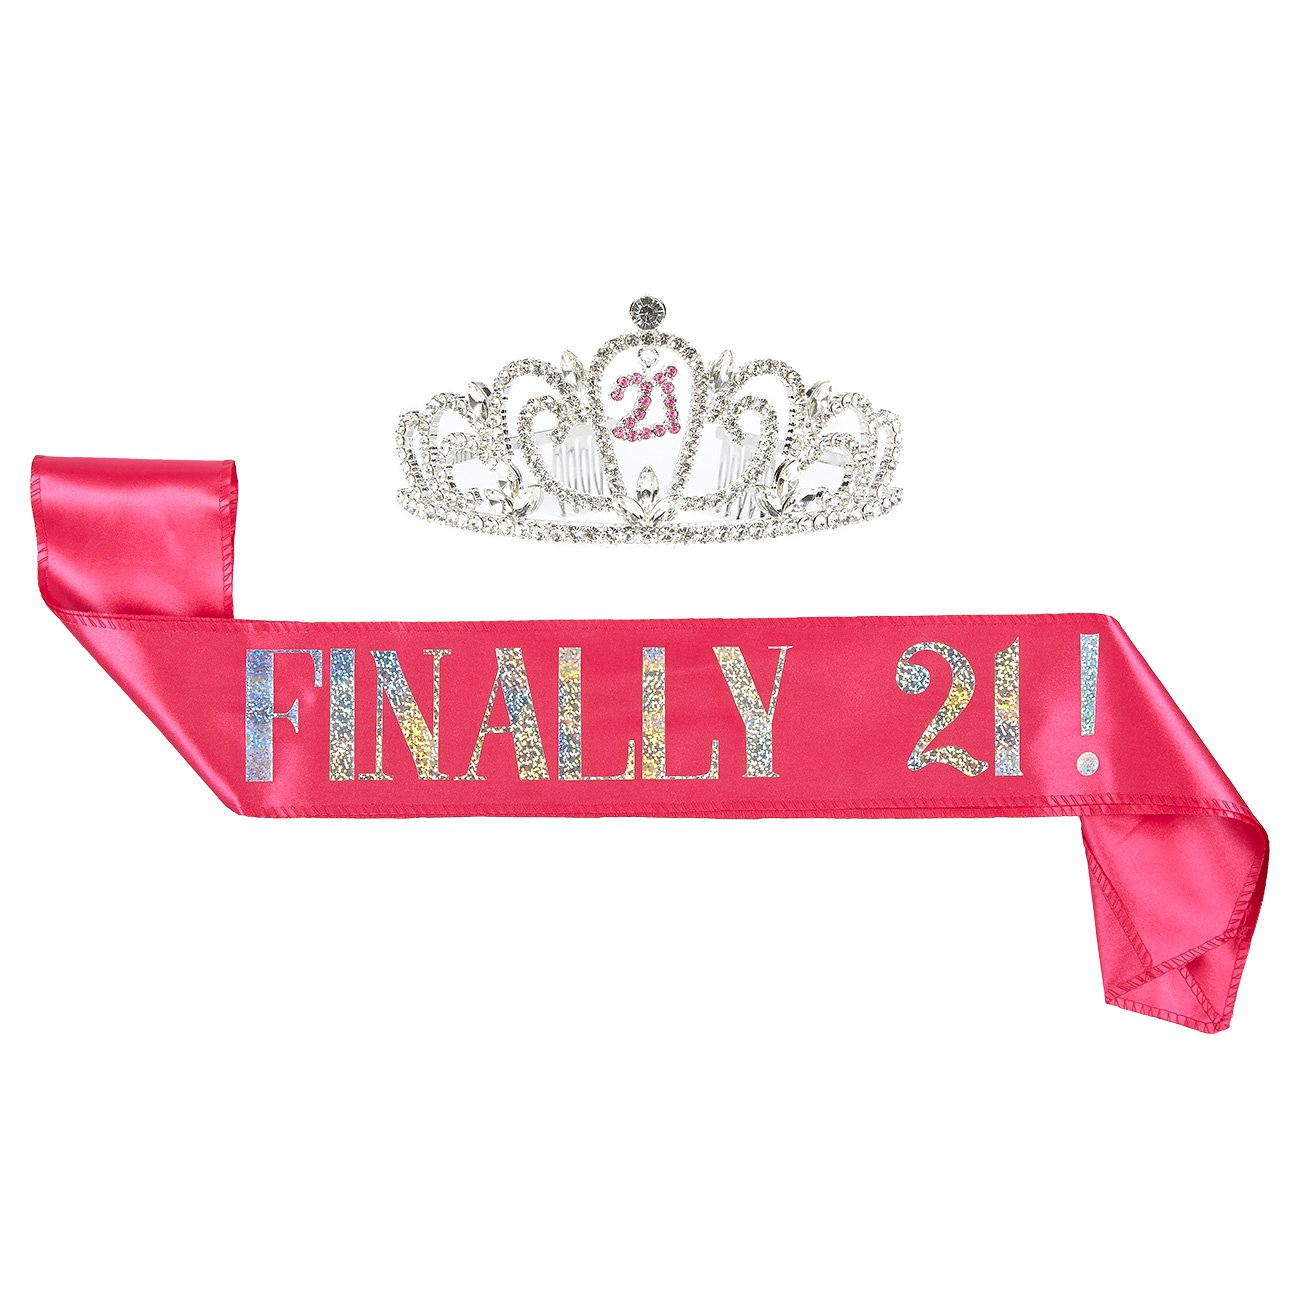 Juvale 2-Pack Set of Birthday Girl Tiara and Birthday Sash - Rhinestone Crown with Finally 21!'' Polyester Sash Decoration for 21st Birthday Celebrations, Pink by Juvale